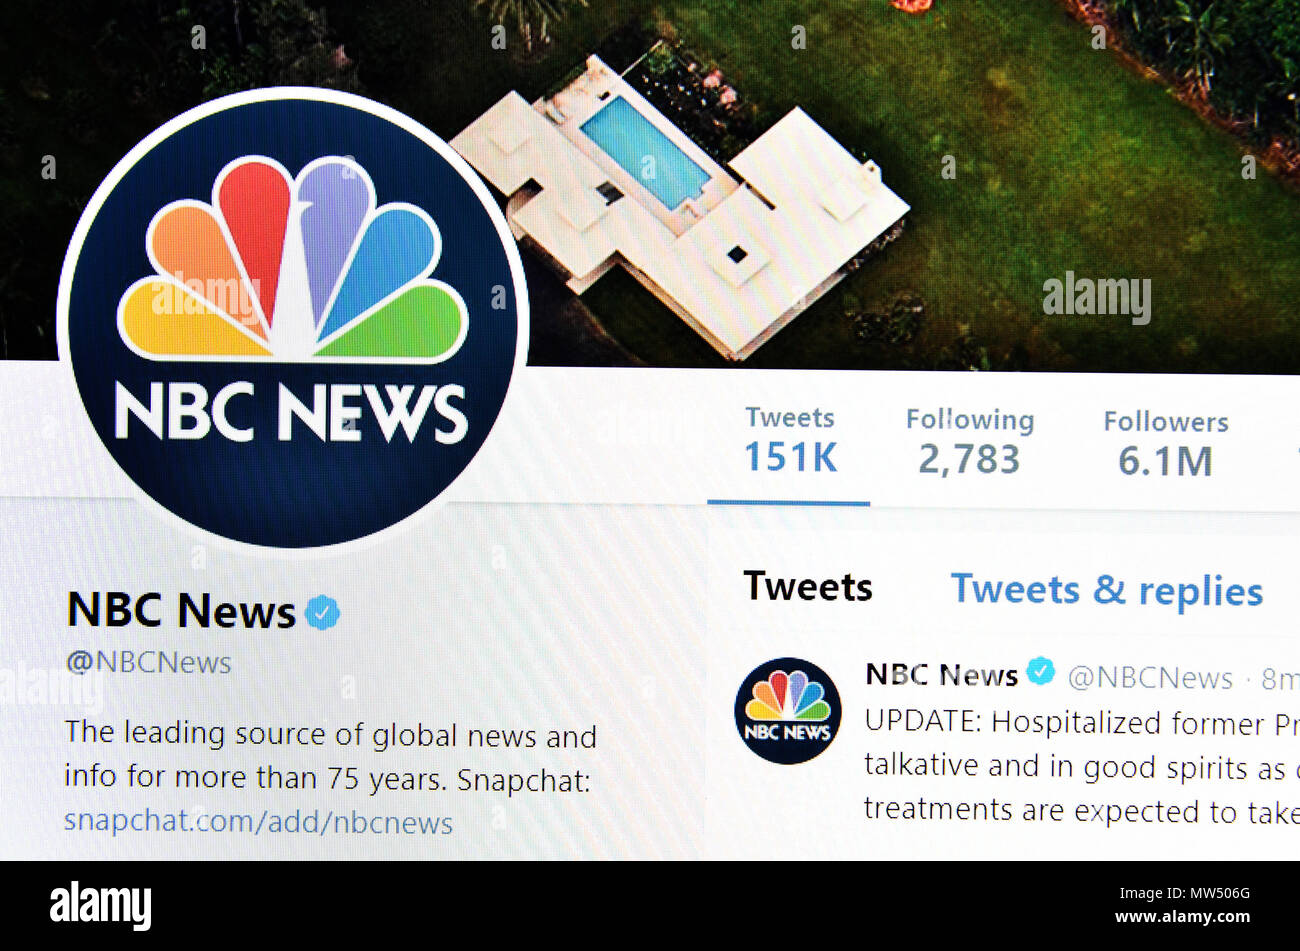 NBC News Twitter page (2018) - Stock Image